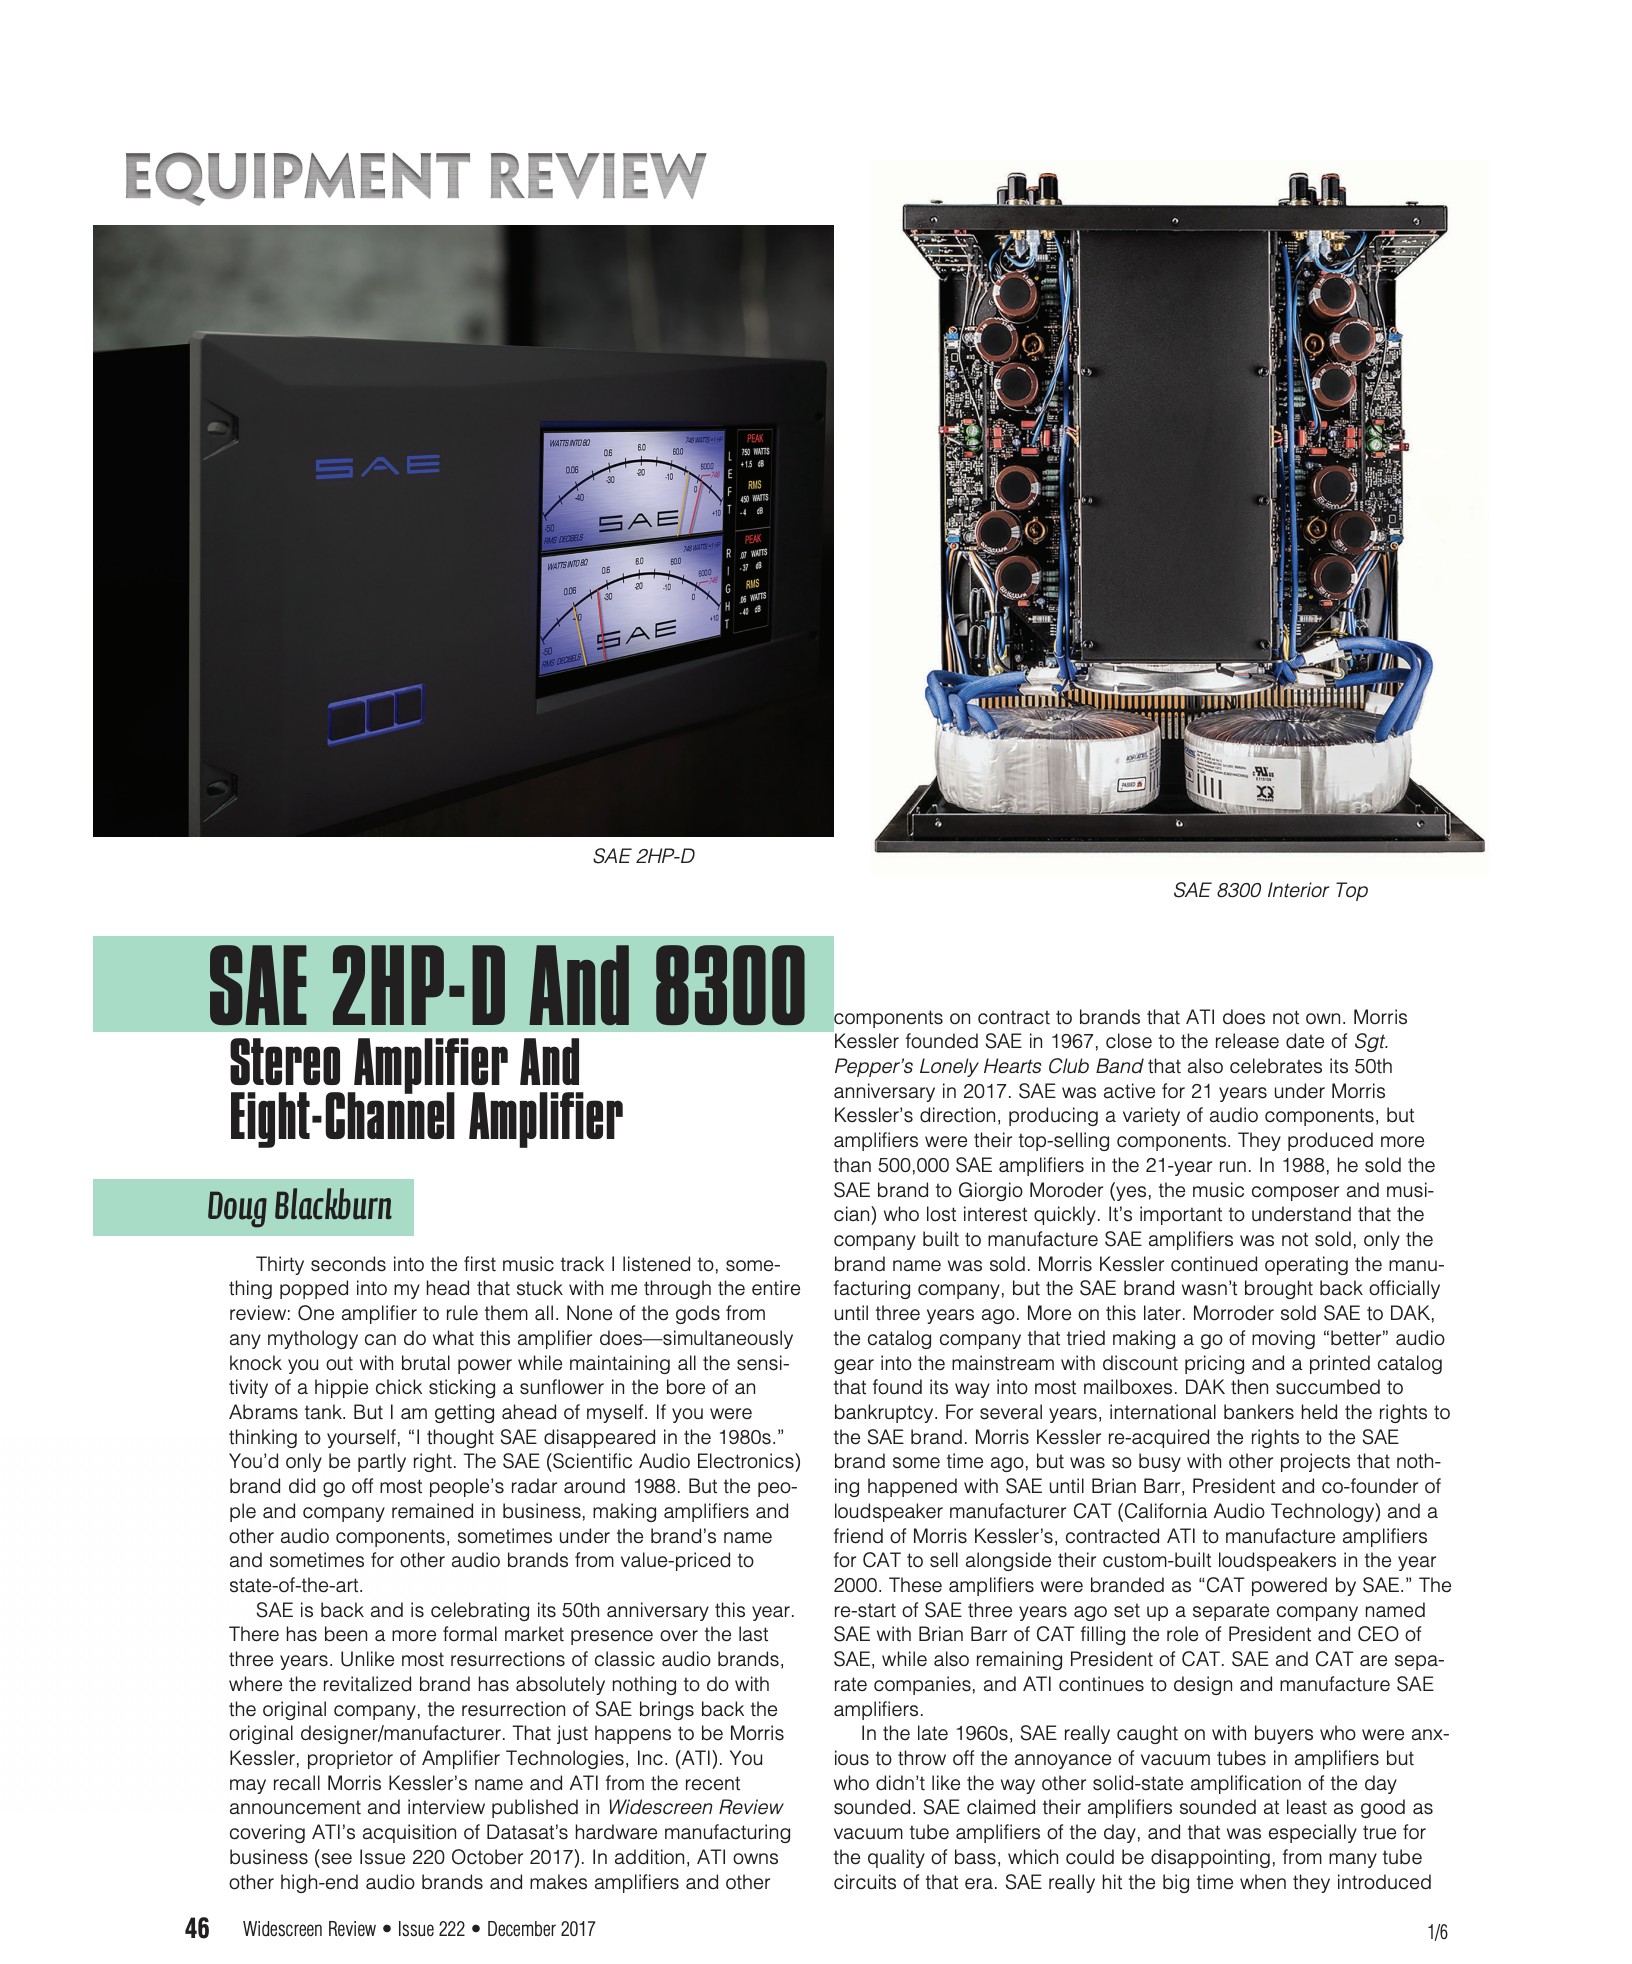 Widescreen Review: SAE 2HP-D and 8300 Amplifiers